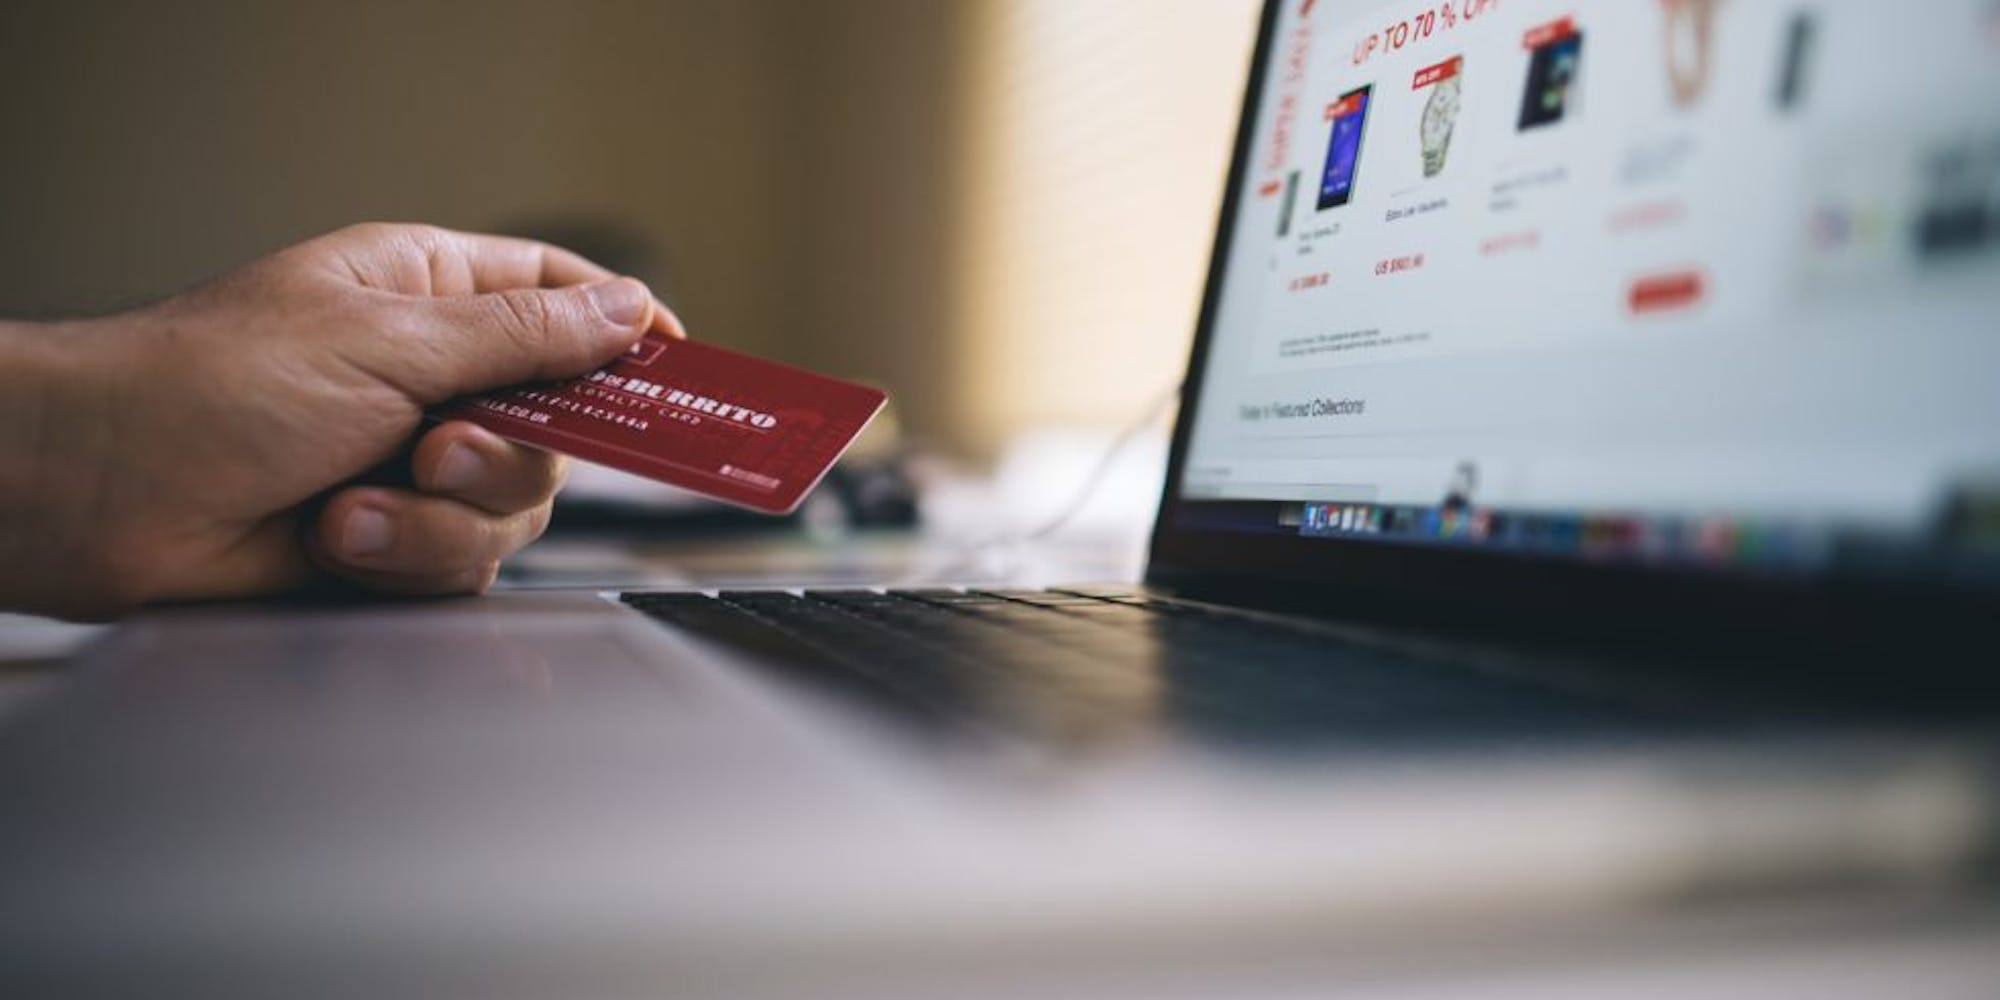 Person holding a credit card, intending to purchase something on the internet